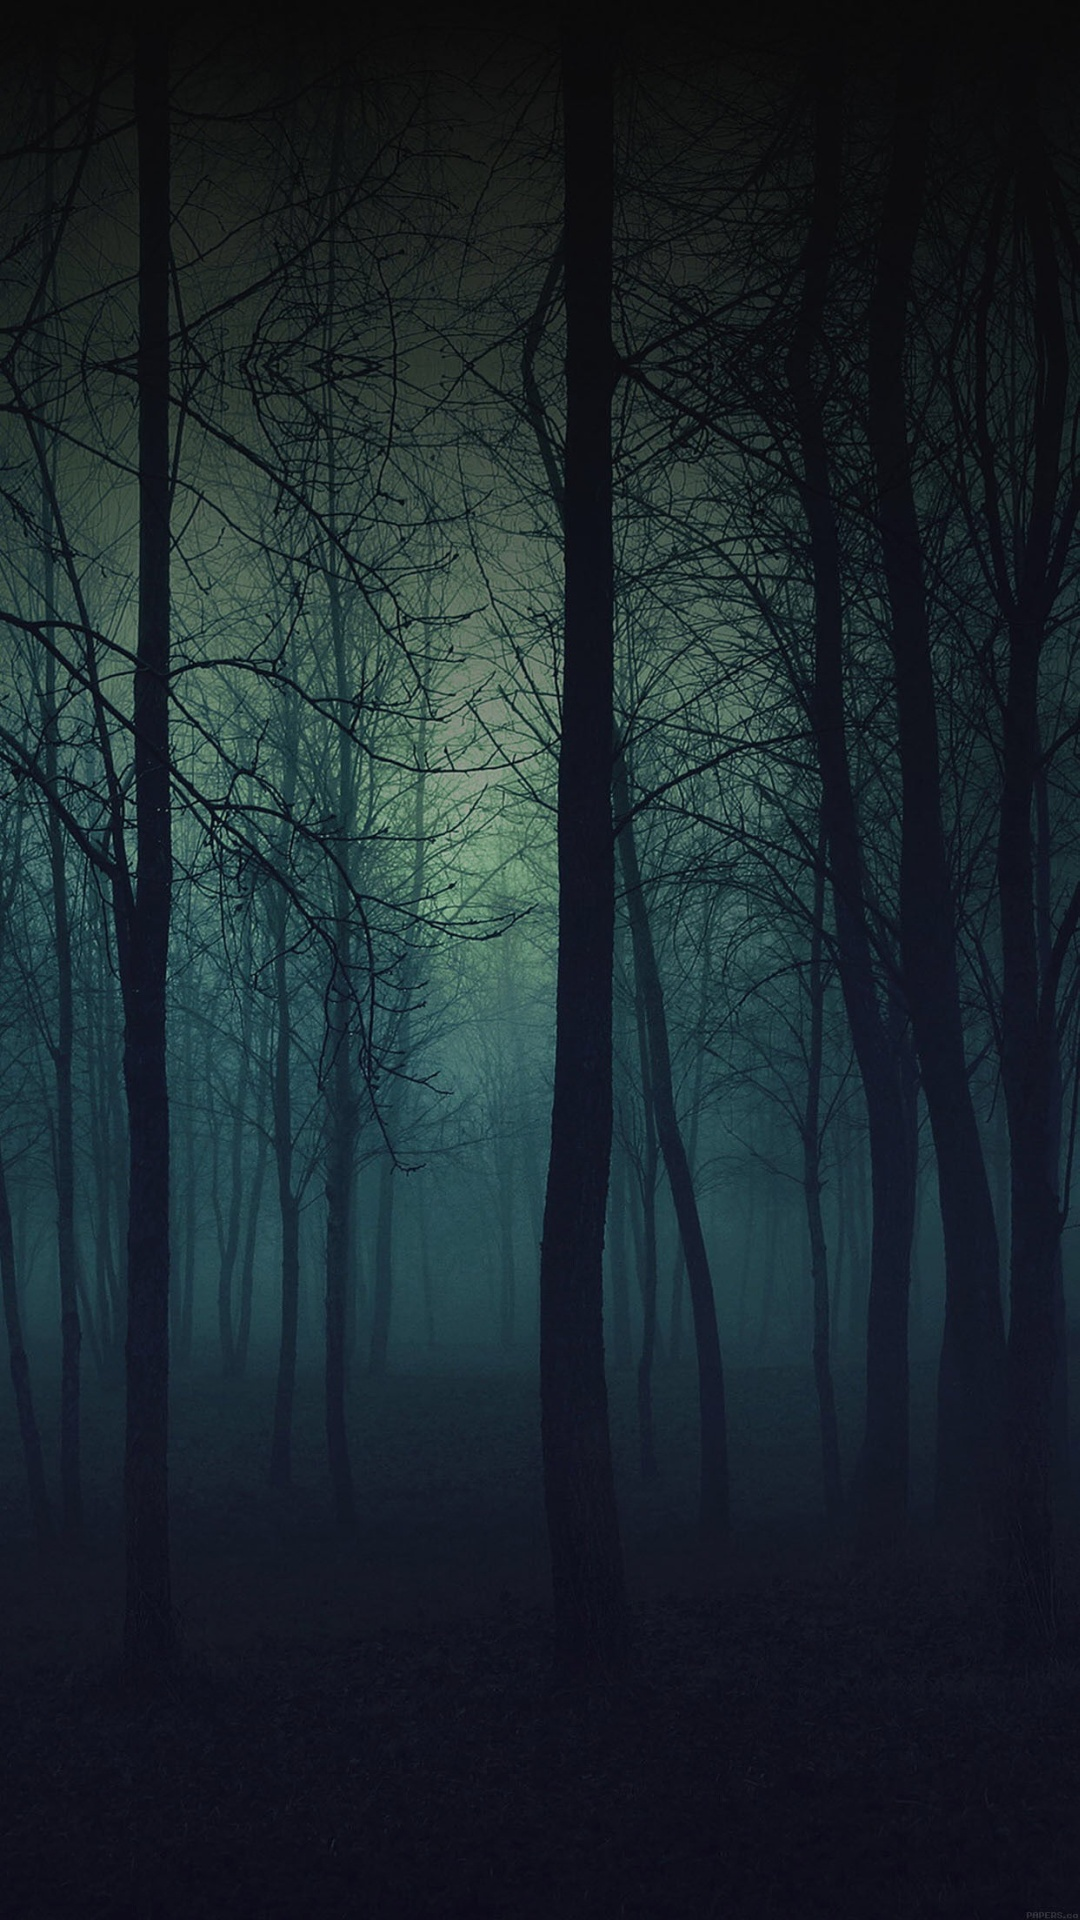 Hd wallpaper for iphone 5s - Eerie Forest Night Iphone 6 Plus Hd Wallpaper Ipod Wallpaper Hd